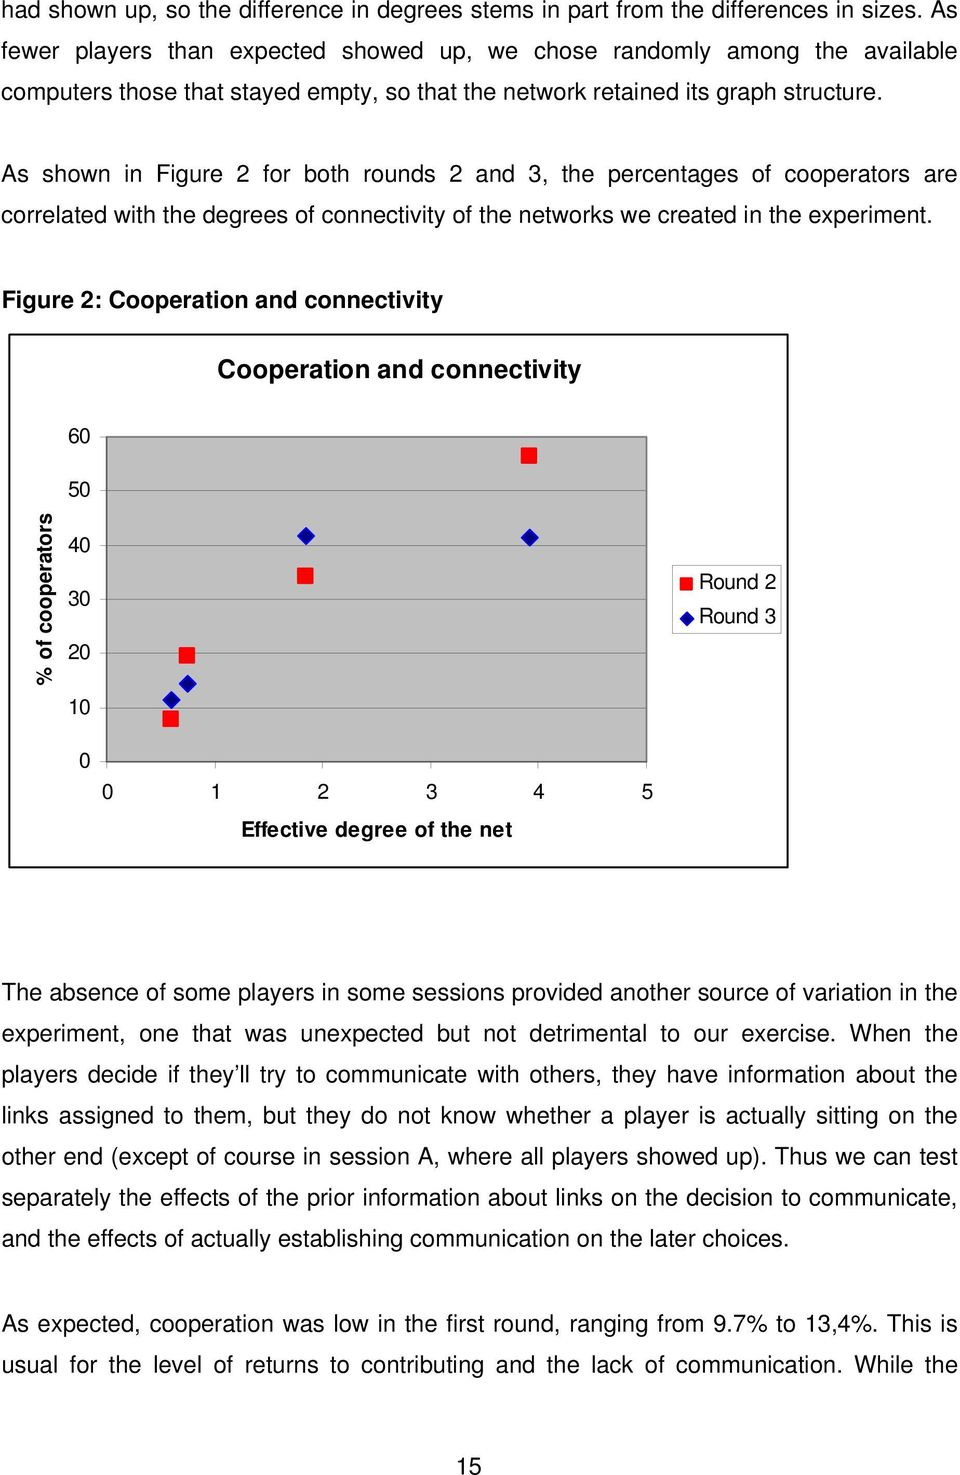 As shown in Figure 2 for both rounds 2 and 3, the percentages of cooperators are correlated with the degrees of connectivity of the networks we created in the experiment.